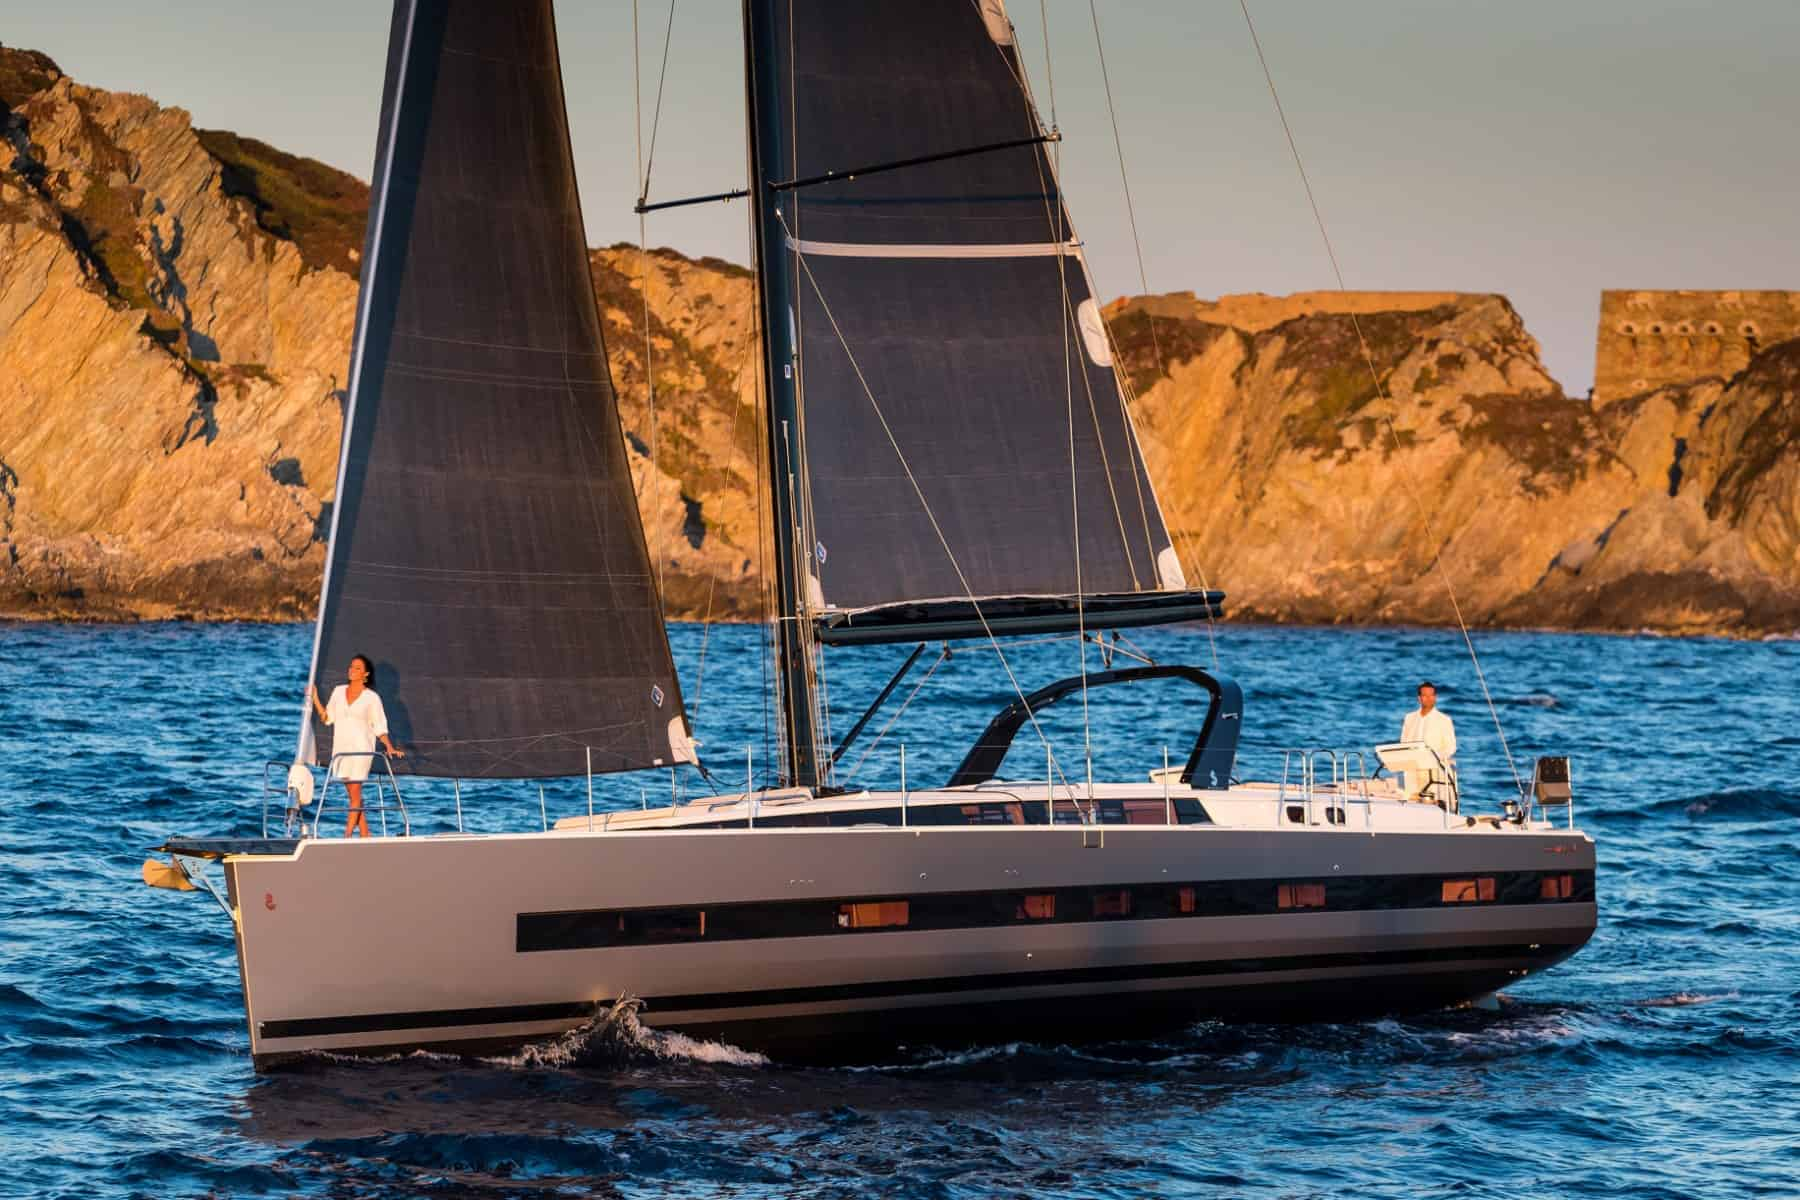 Beneteau_Oceanis_Yacht_62_up wind